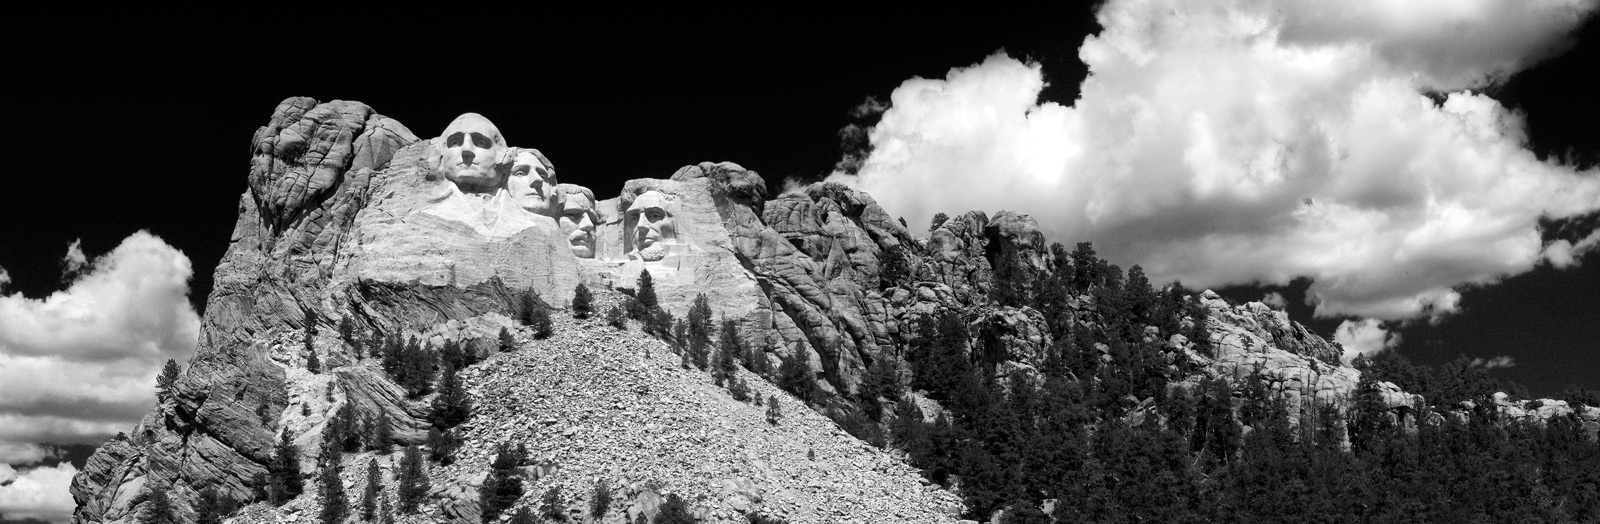 Mt. Rushmore - Black Hills, South Dakota